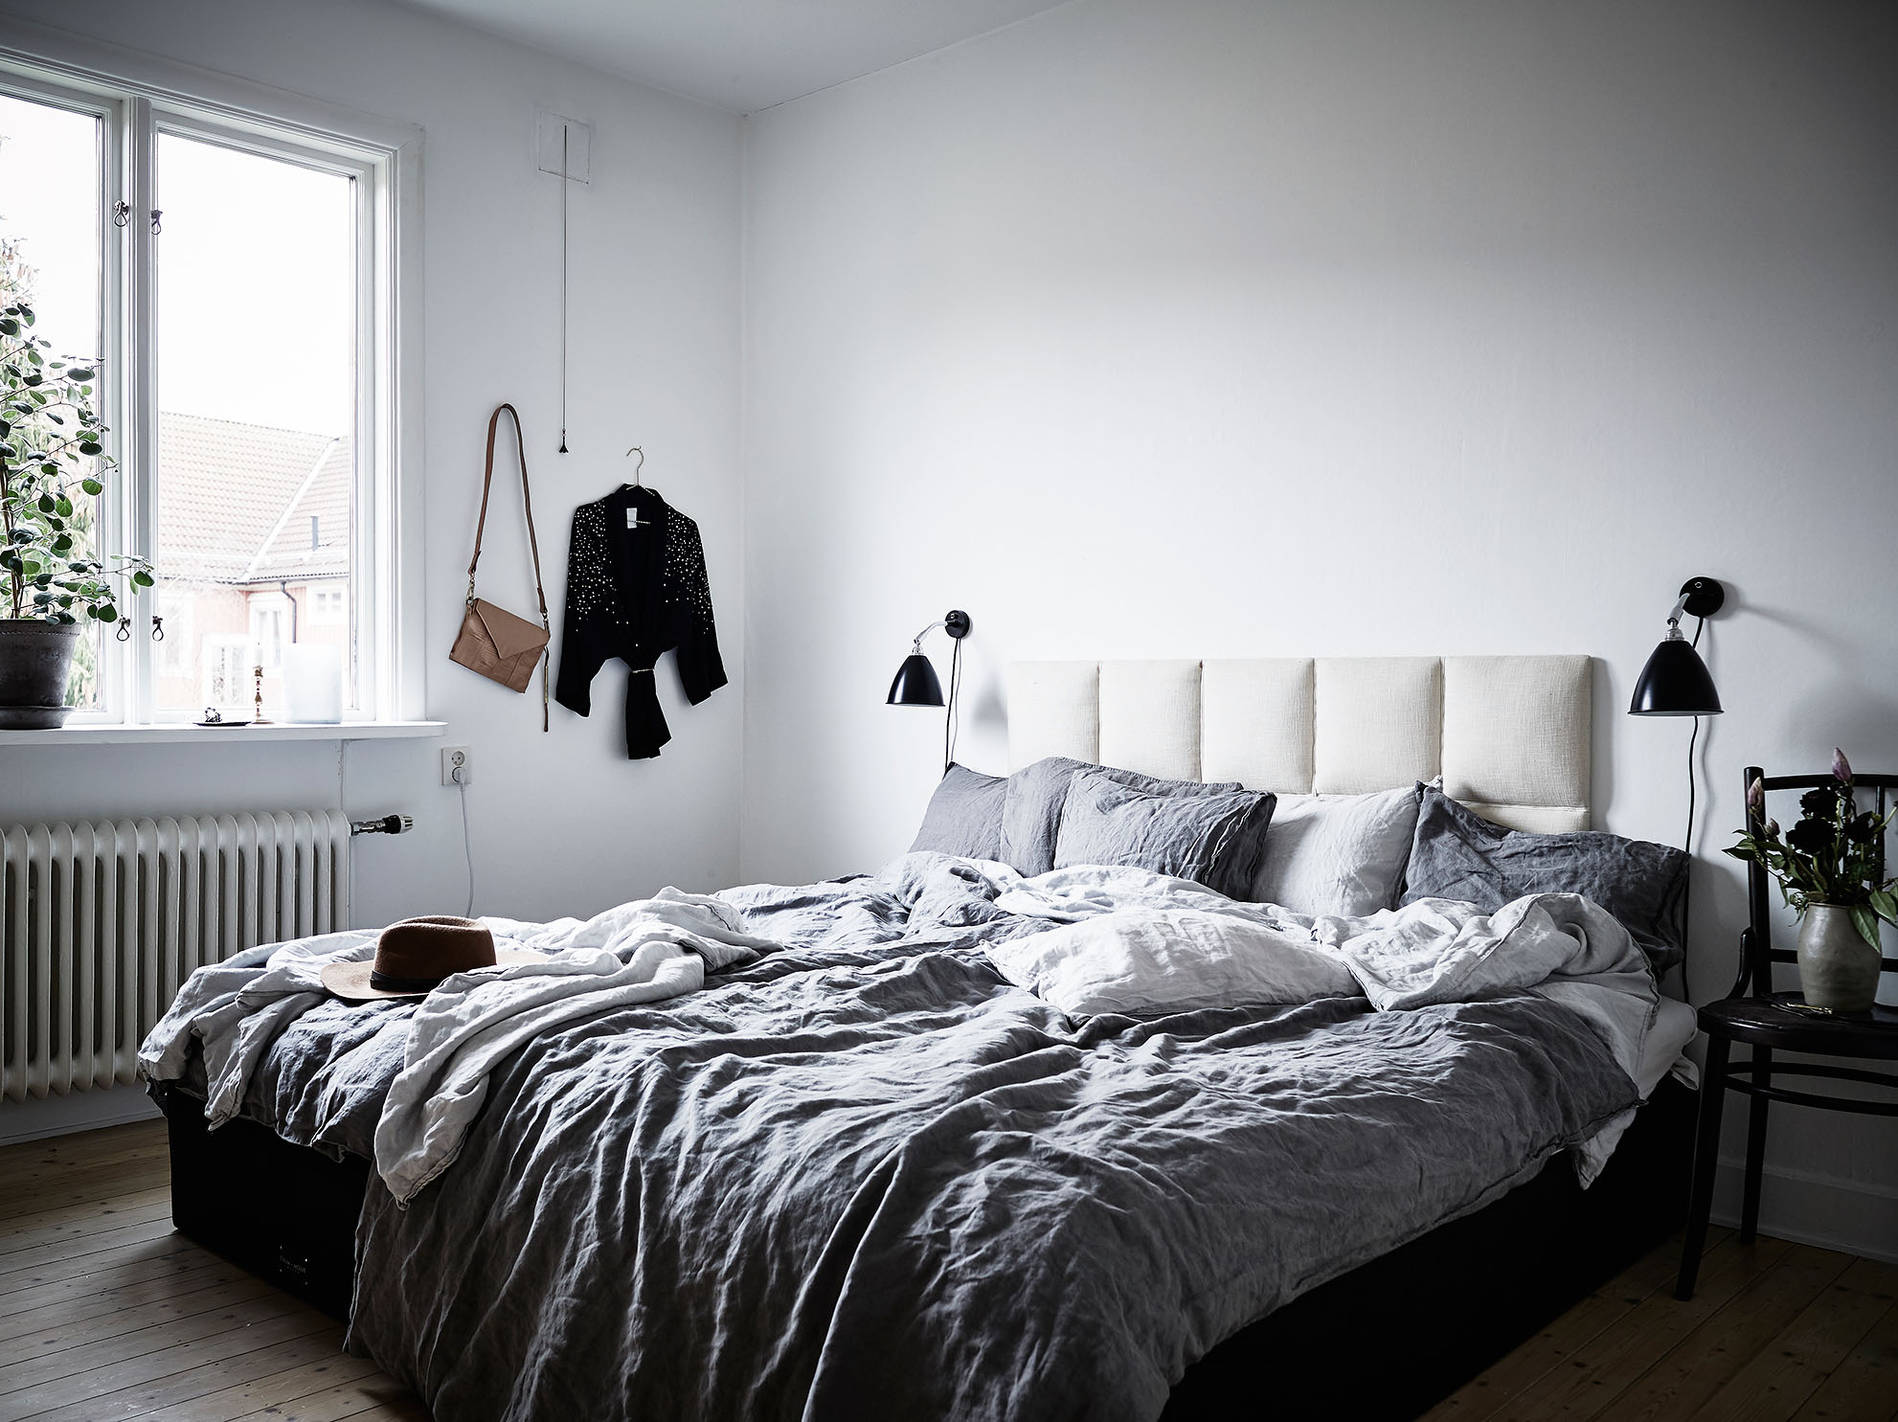 Home with style and character coco lapine designcoco lapine design - Old fashioned vintage bedroom design styles cozy cheerful vibe ...